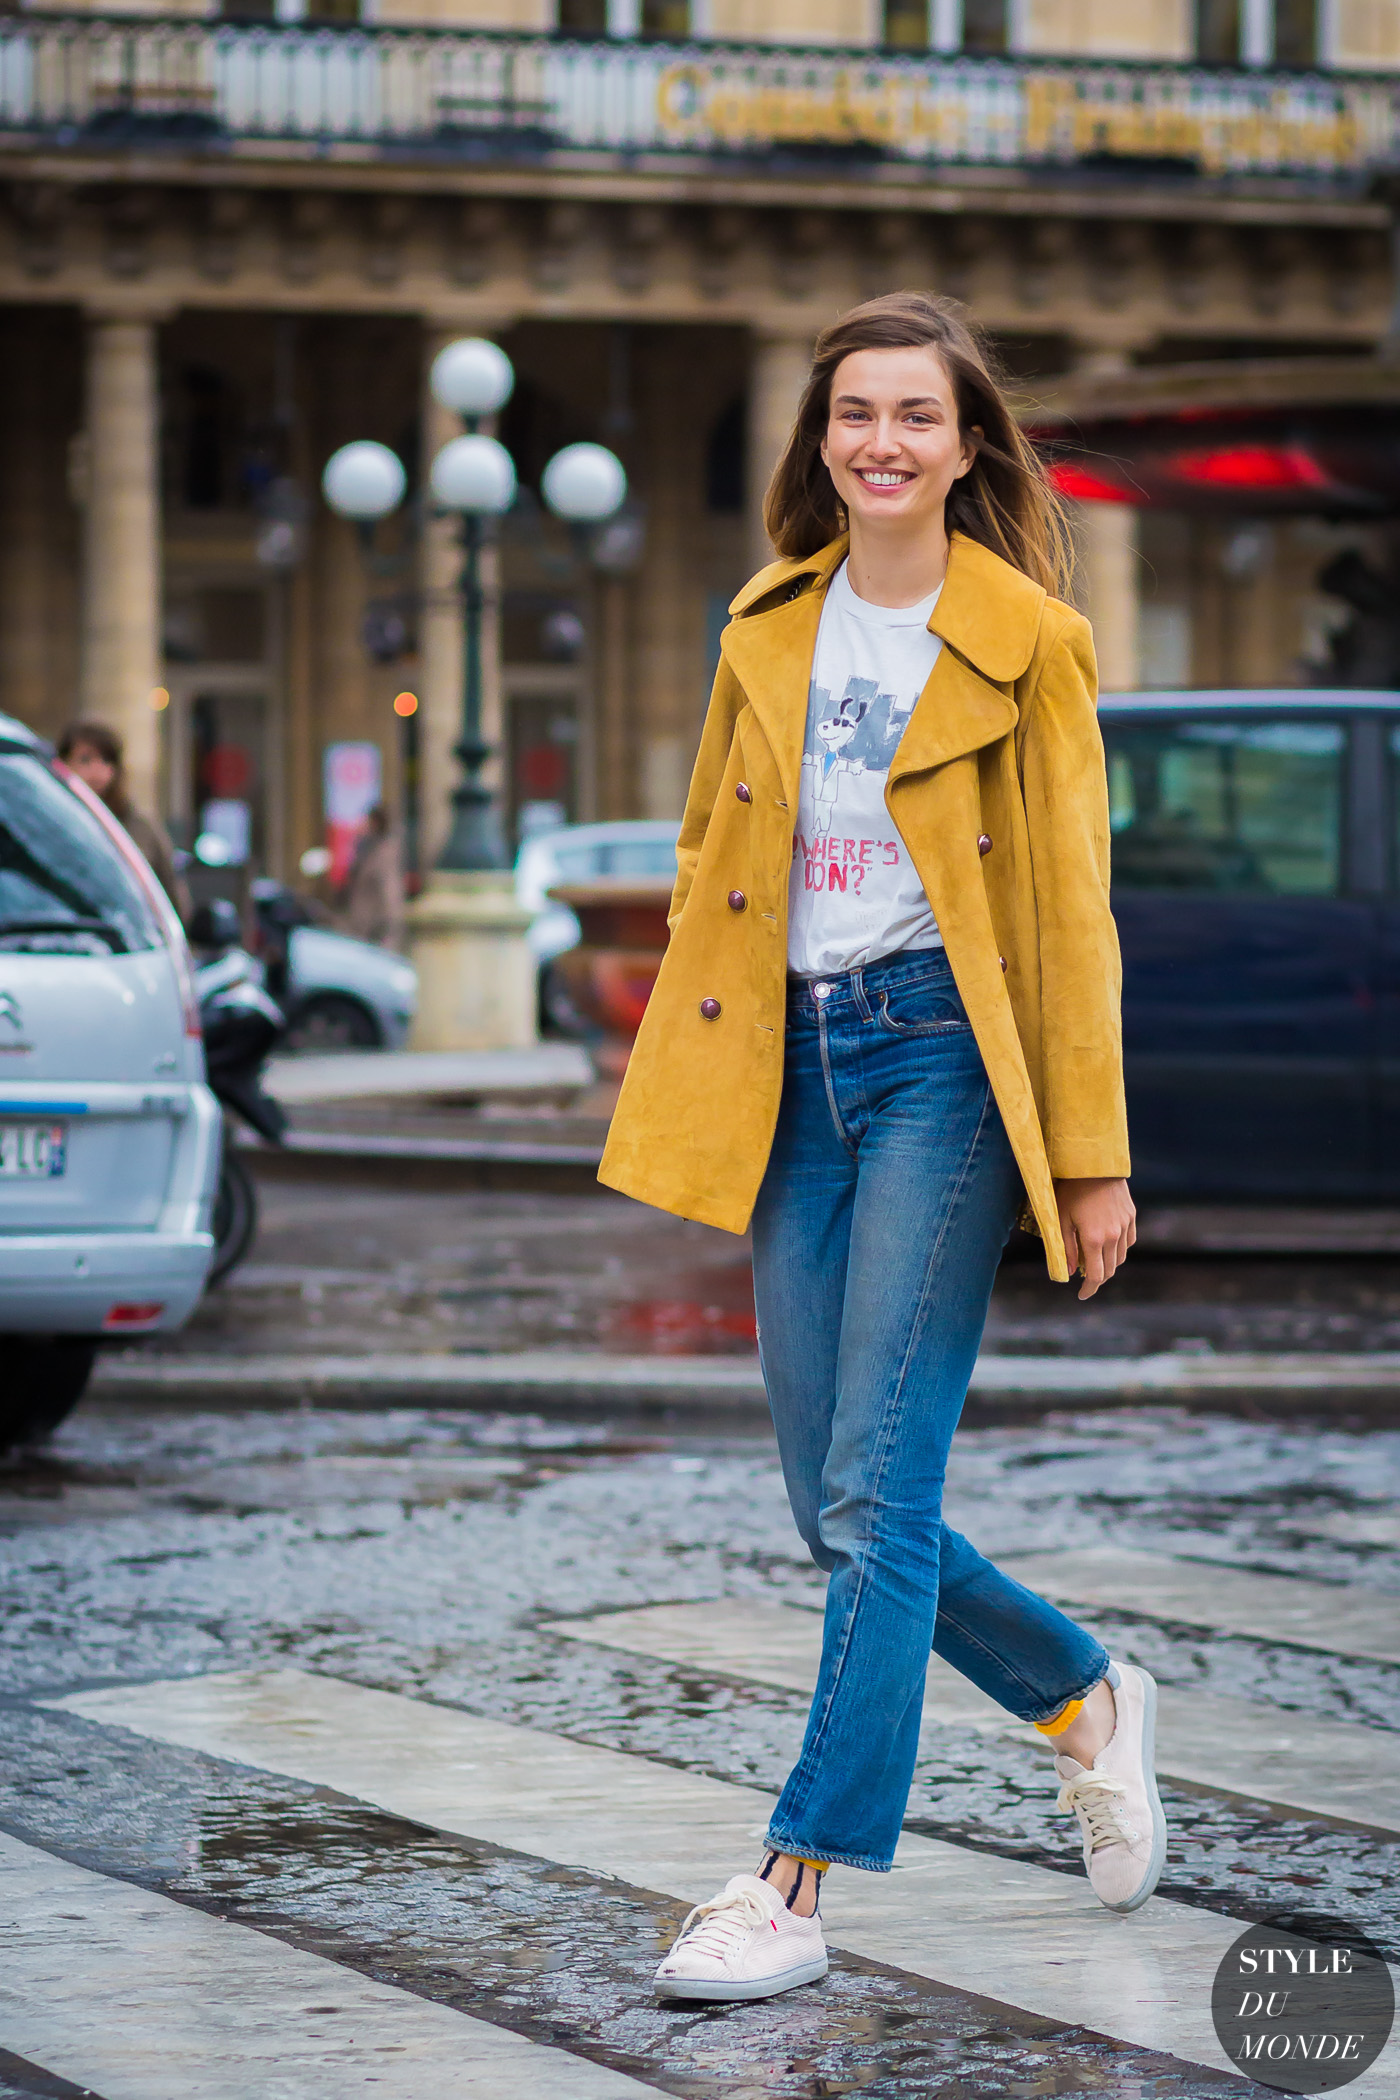 andreea-diaconu-by-styledumonde-street-style-fashion-photography